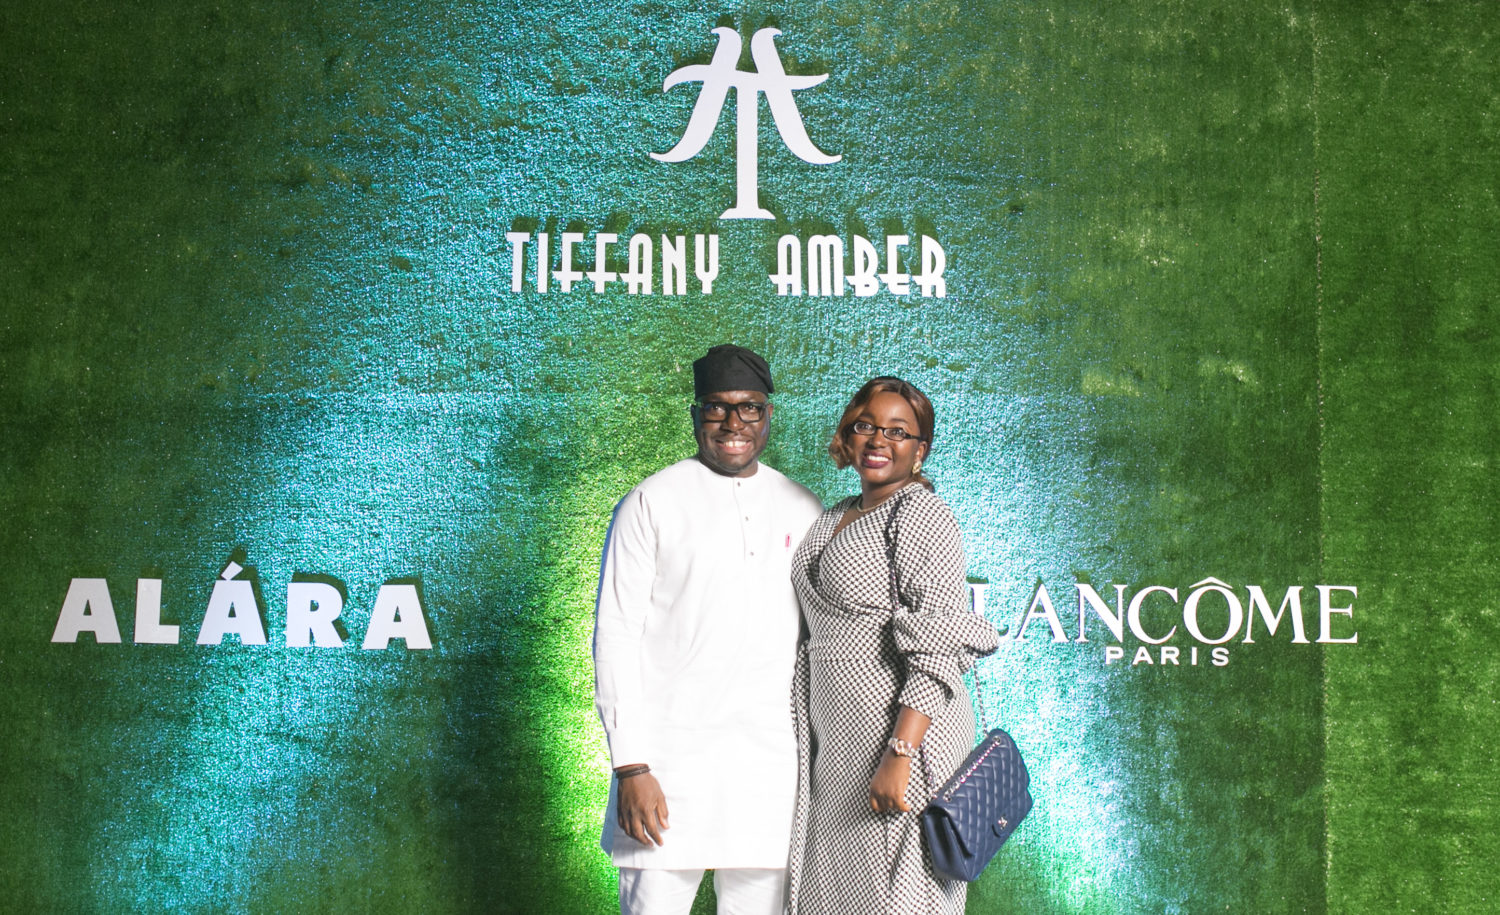 Tiffany Amber Celebrated Her 20th Anniversary at Alara, See all The Fun Red Carpet Moments You Missed!